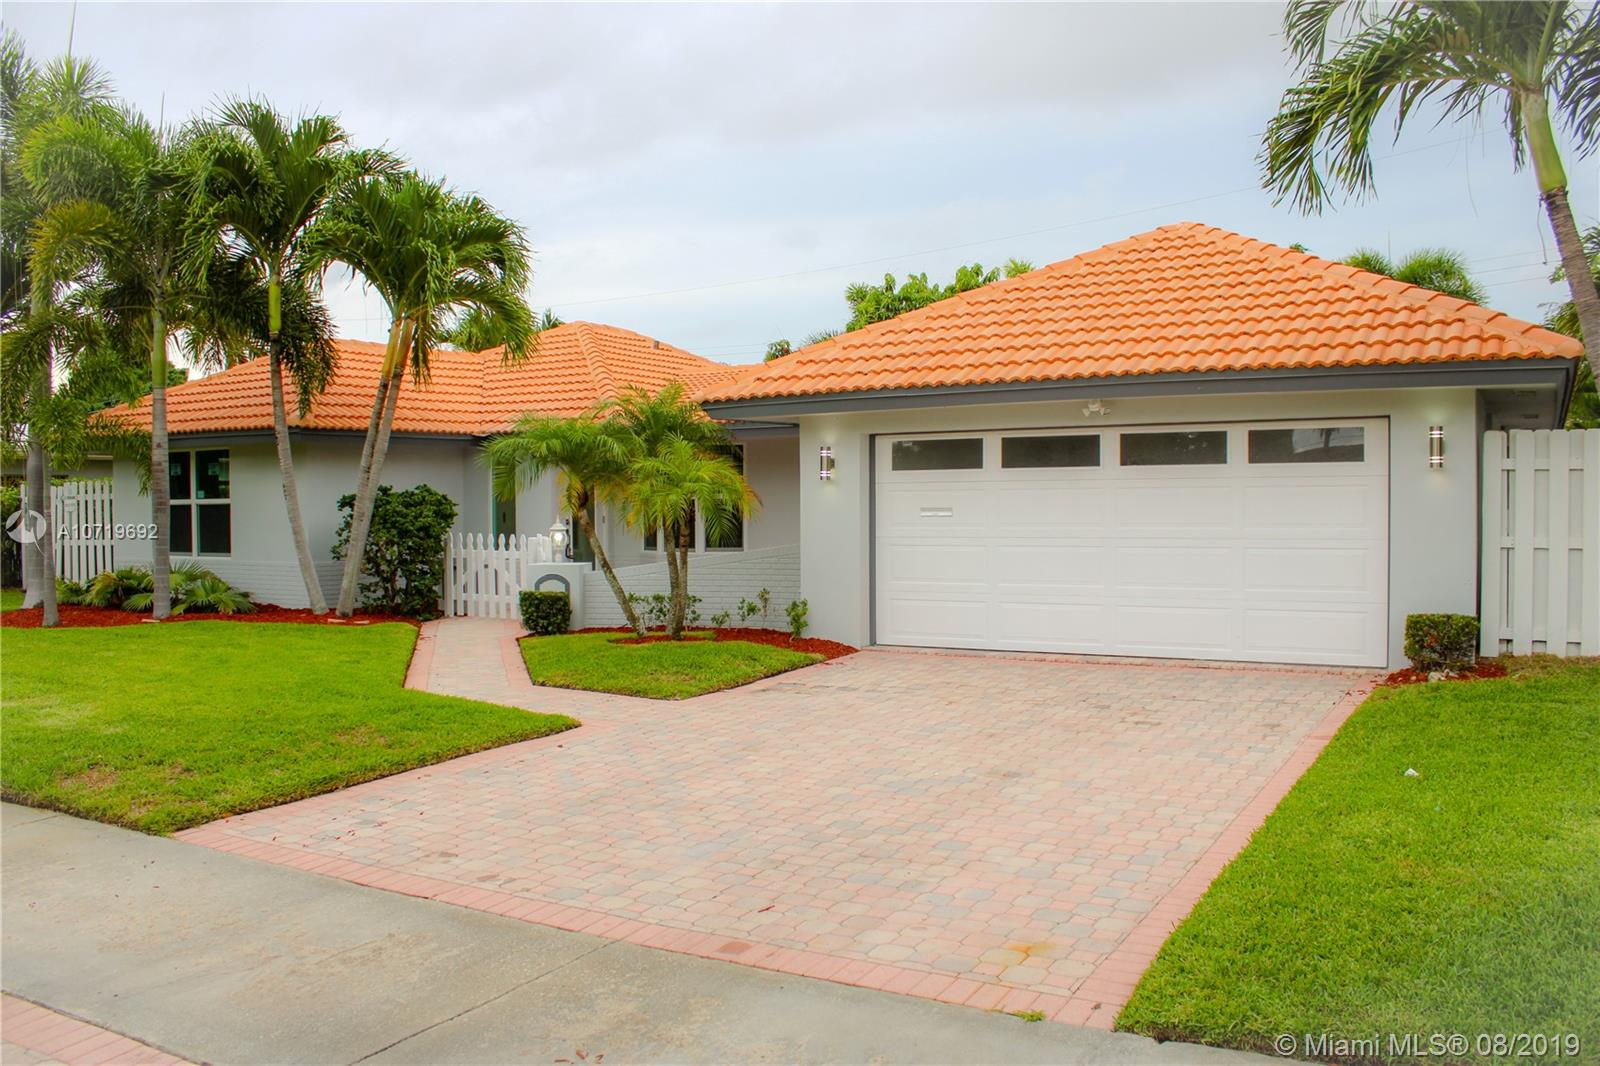 Single family home in Imperial Point, just minutes from the beach and restaurants at Lauderdale by the Sea. This 3 bedrooms 2 bathrooms and 2 car garage has desirable open floor plan with plenty of natural light plus an amazing backyard with a pool and outdoor gas grill to entertain the whole family. You have pool view from almost every room of the beauty. Imperial Point is a cozy neighborhood in east Fort Lauderdale, Florida and is conveniently located within walking distance to parks, casual restaurants and shopping. Hurry up because this unique opportunity won't last long!